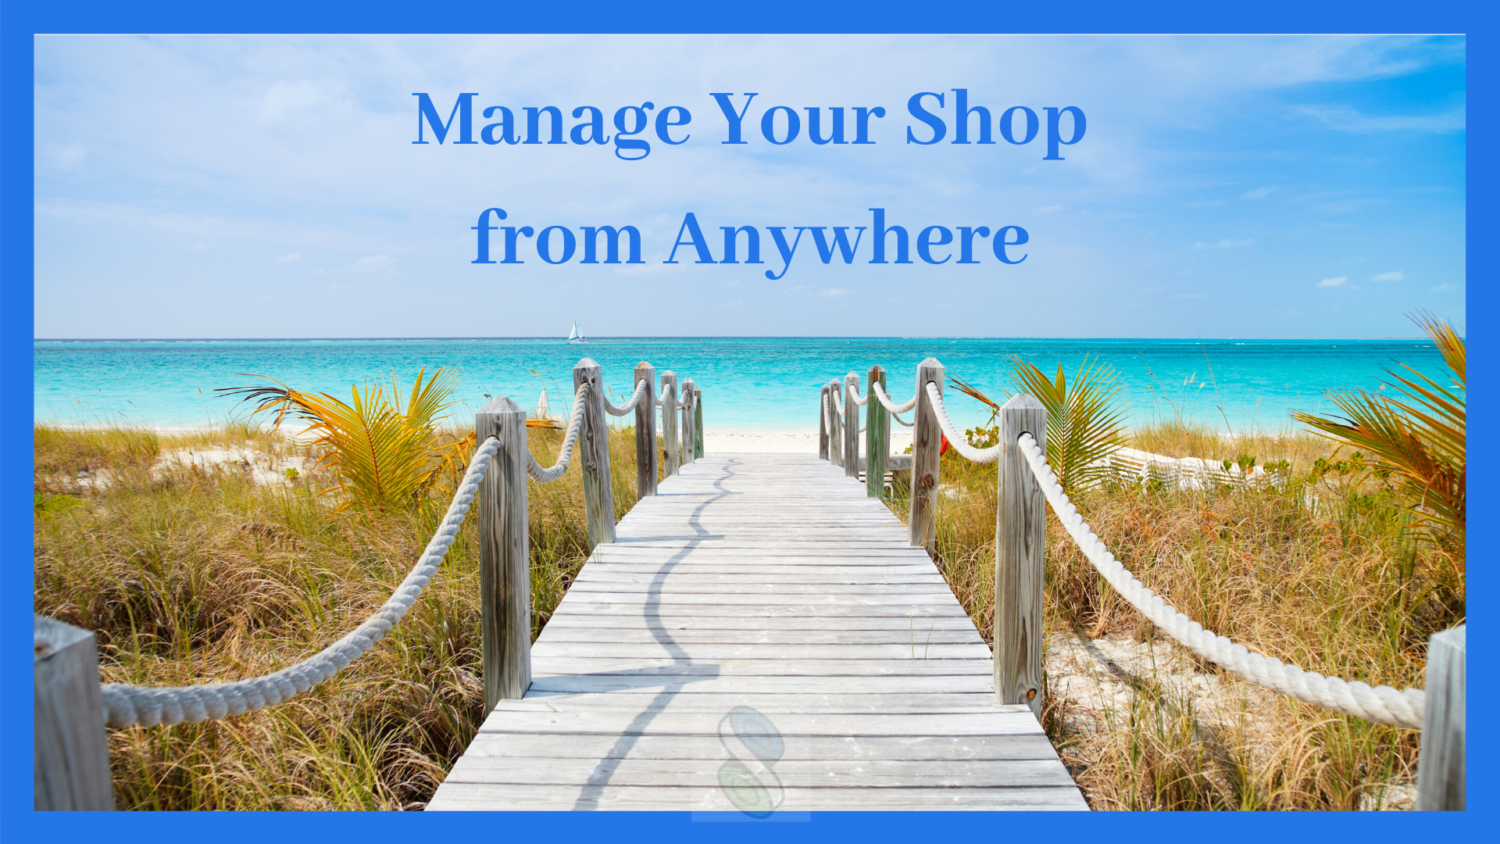 manage your custom business from anywhere